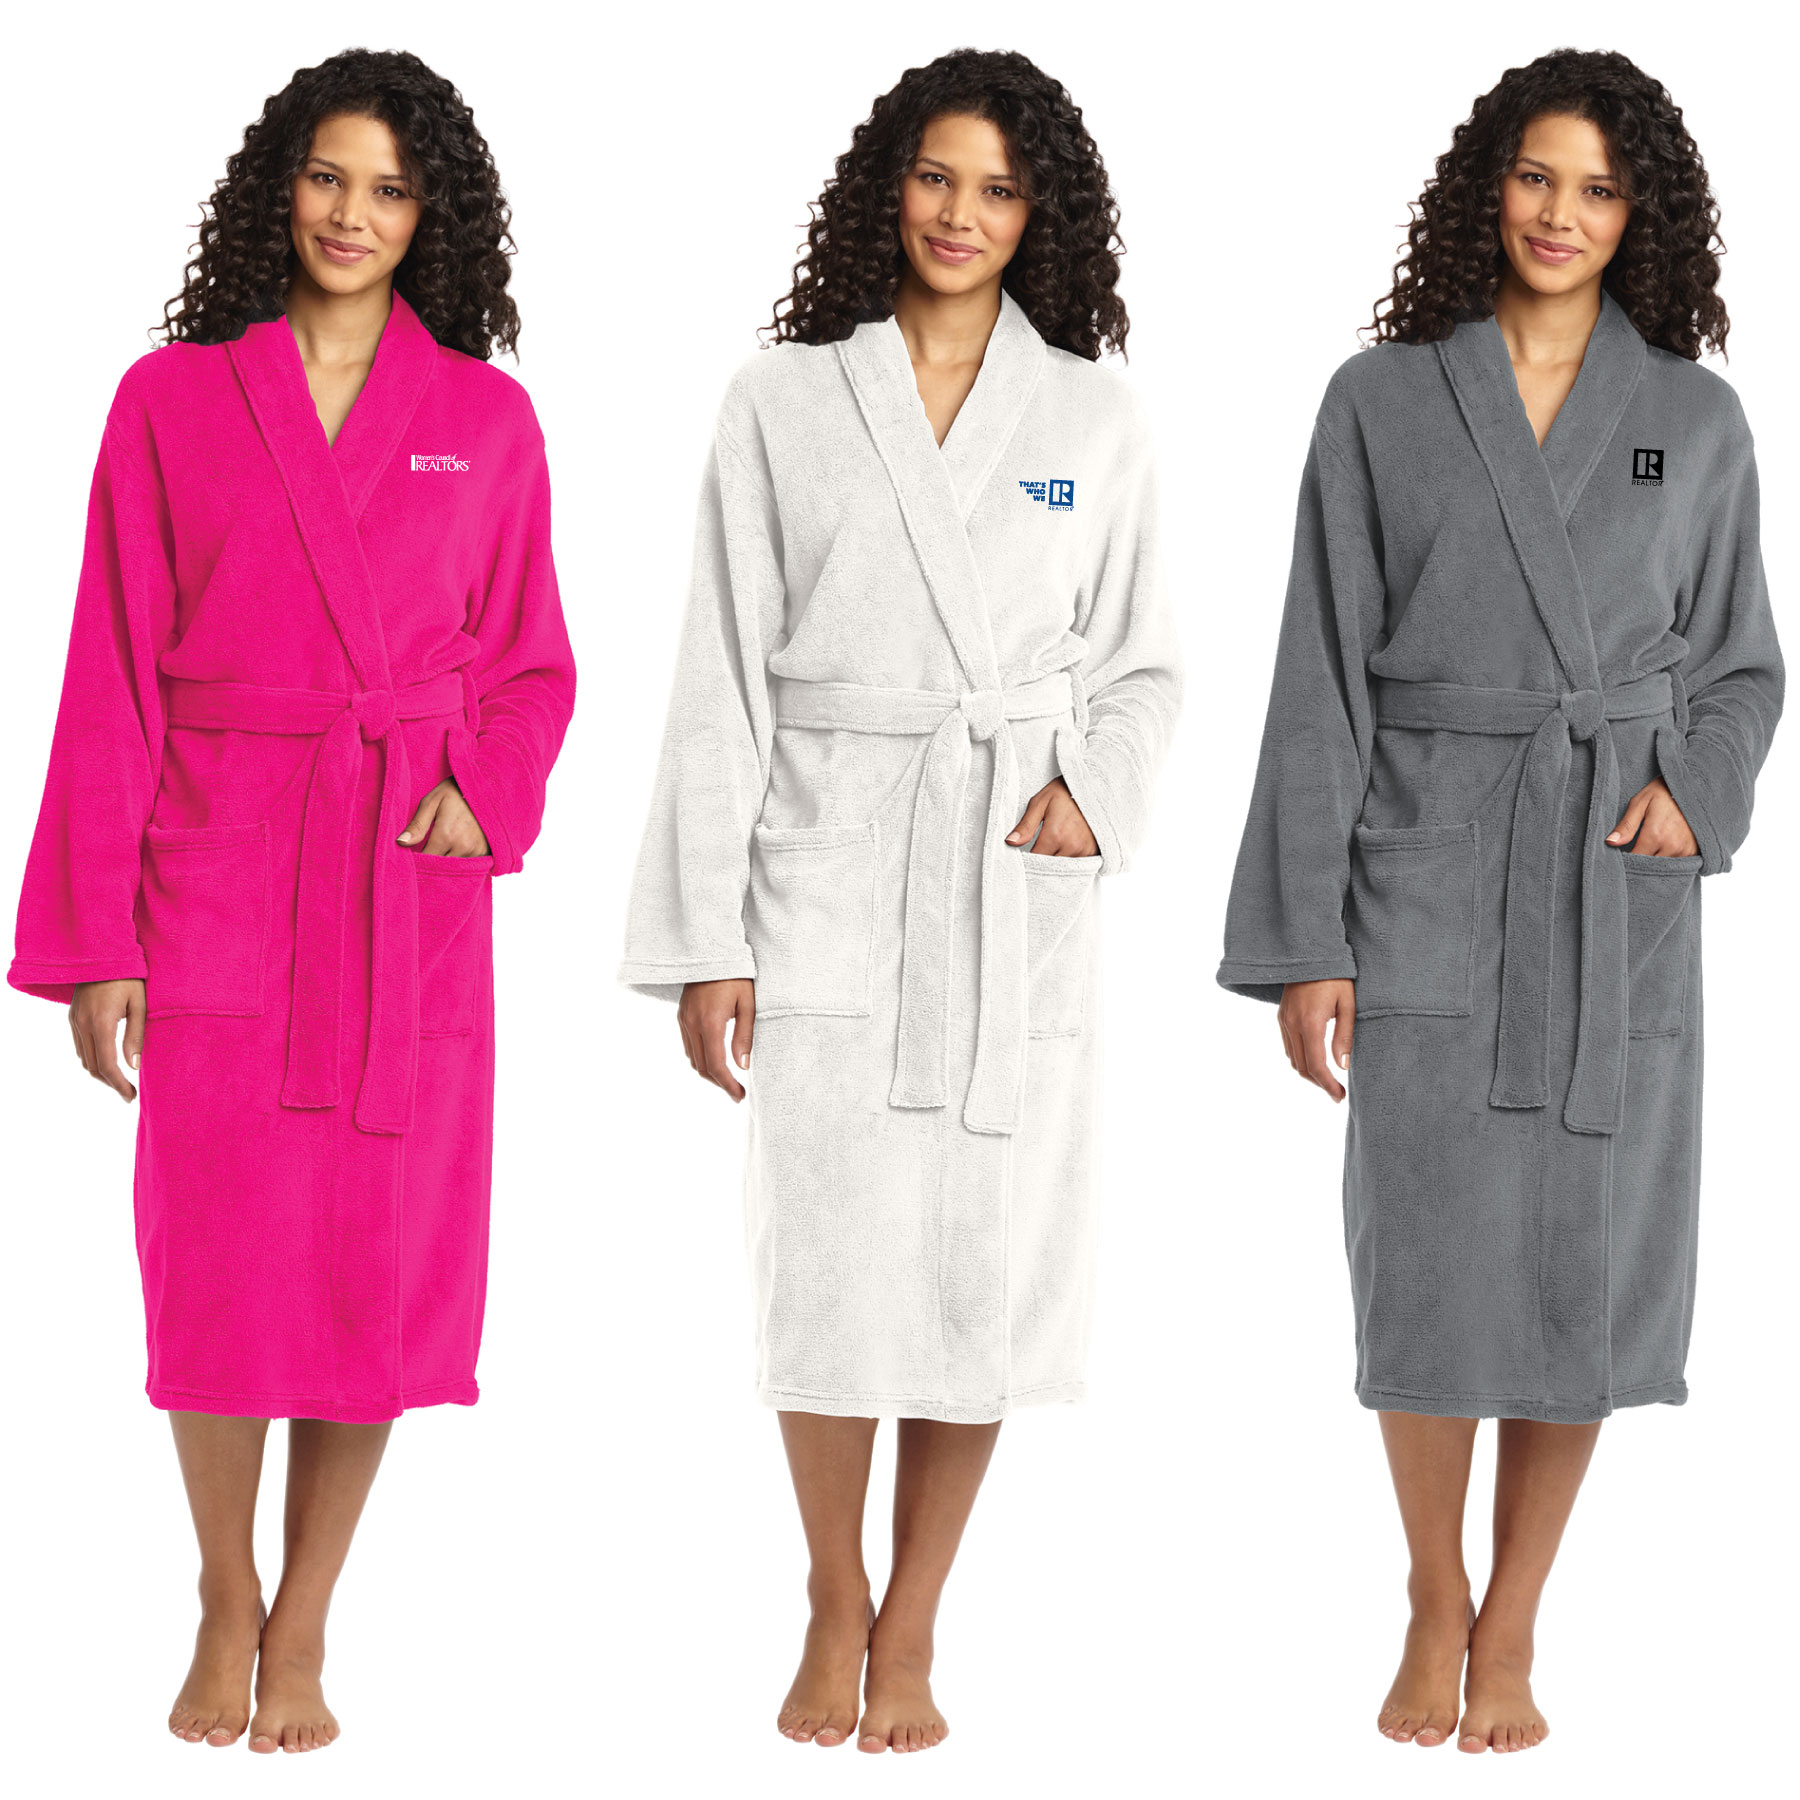 Stratton Plush Unisex Shawl Collar Robe Robes,Terry,Baths,Bathrobes,Sleep,Dry,Dries